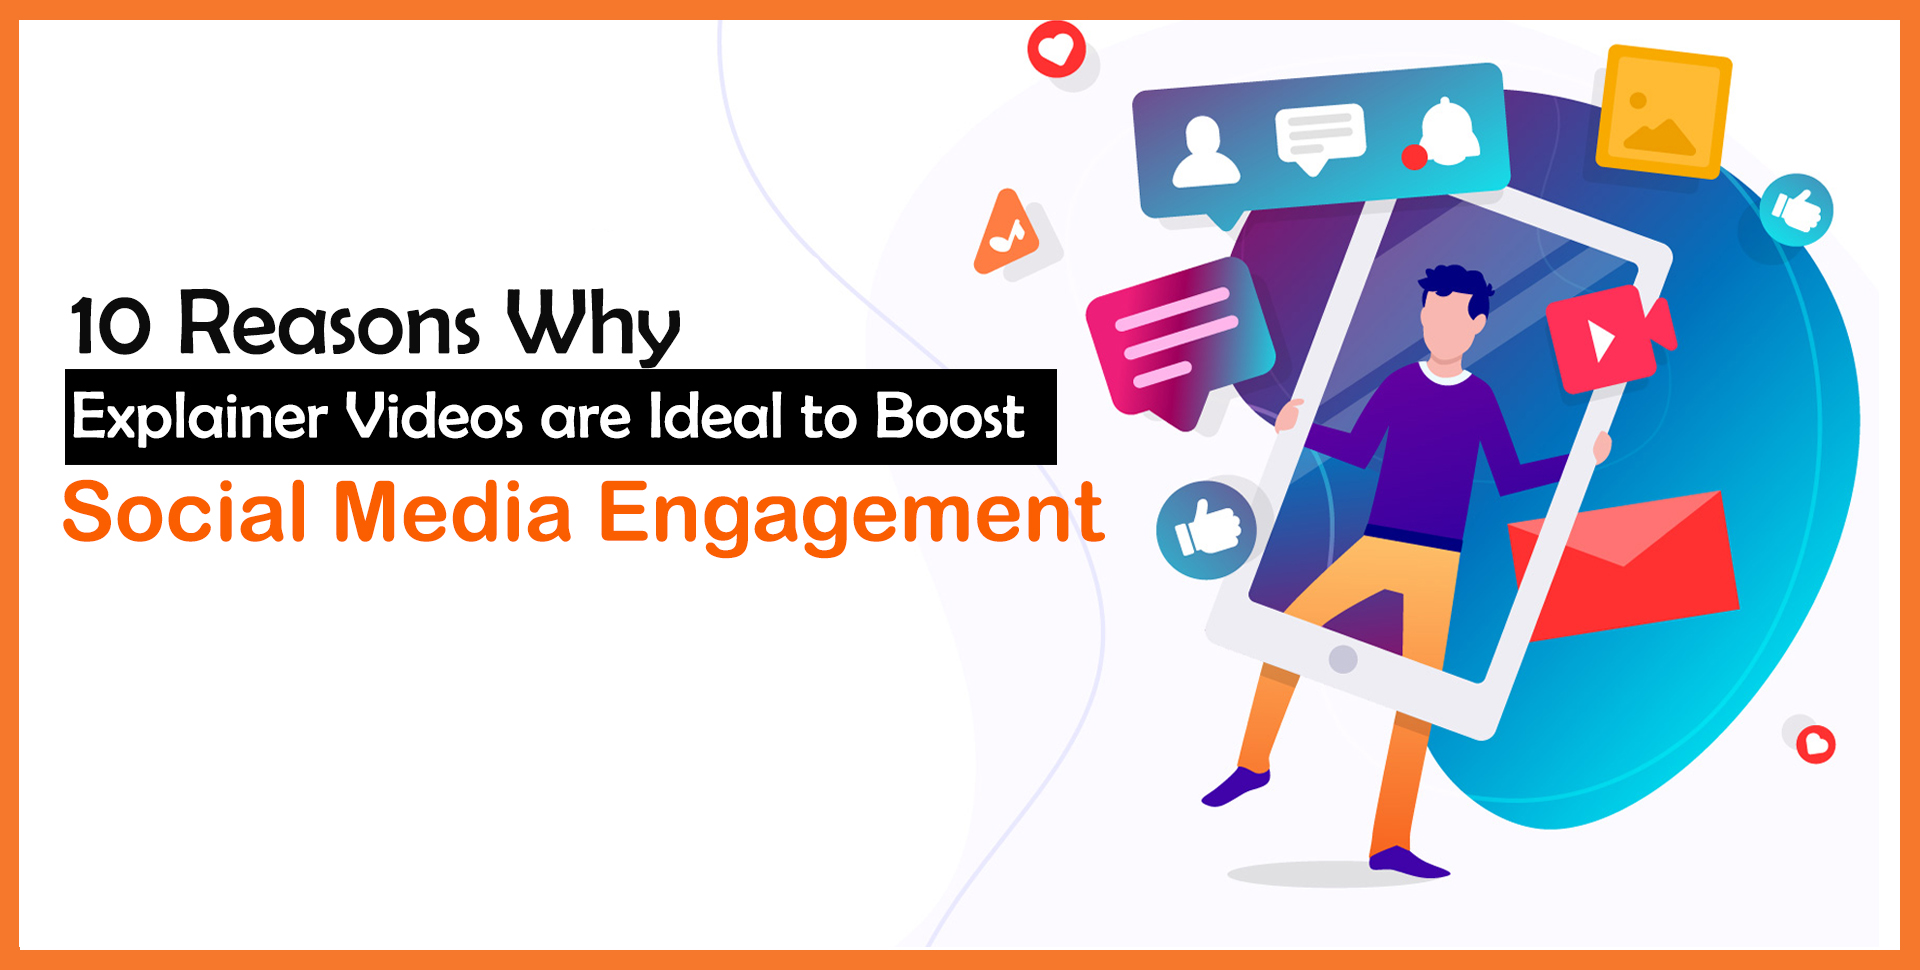 10 Reasons why Explainer Videos are Ideal to Boost Social Media Engagement